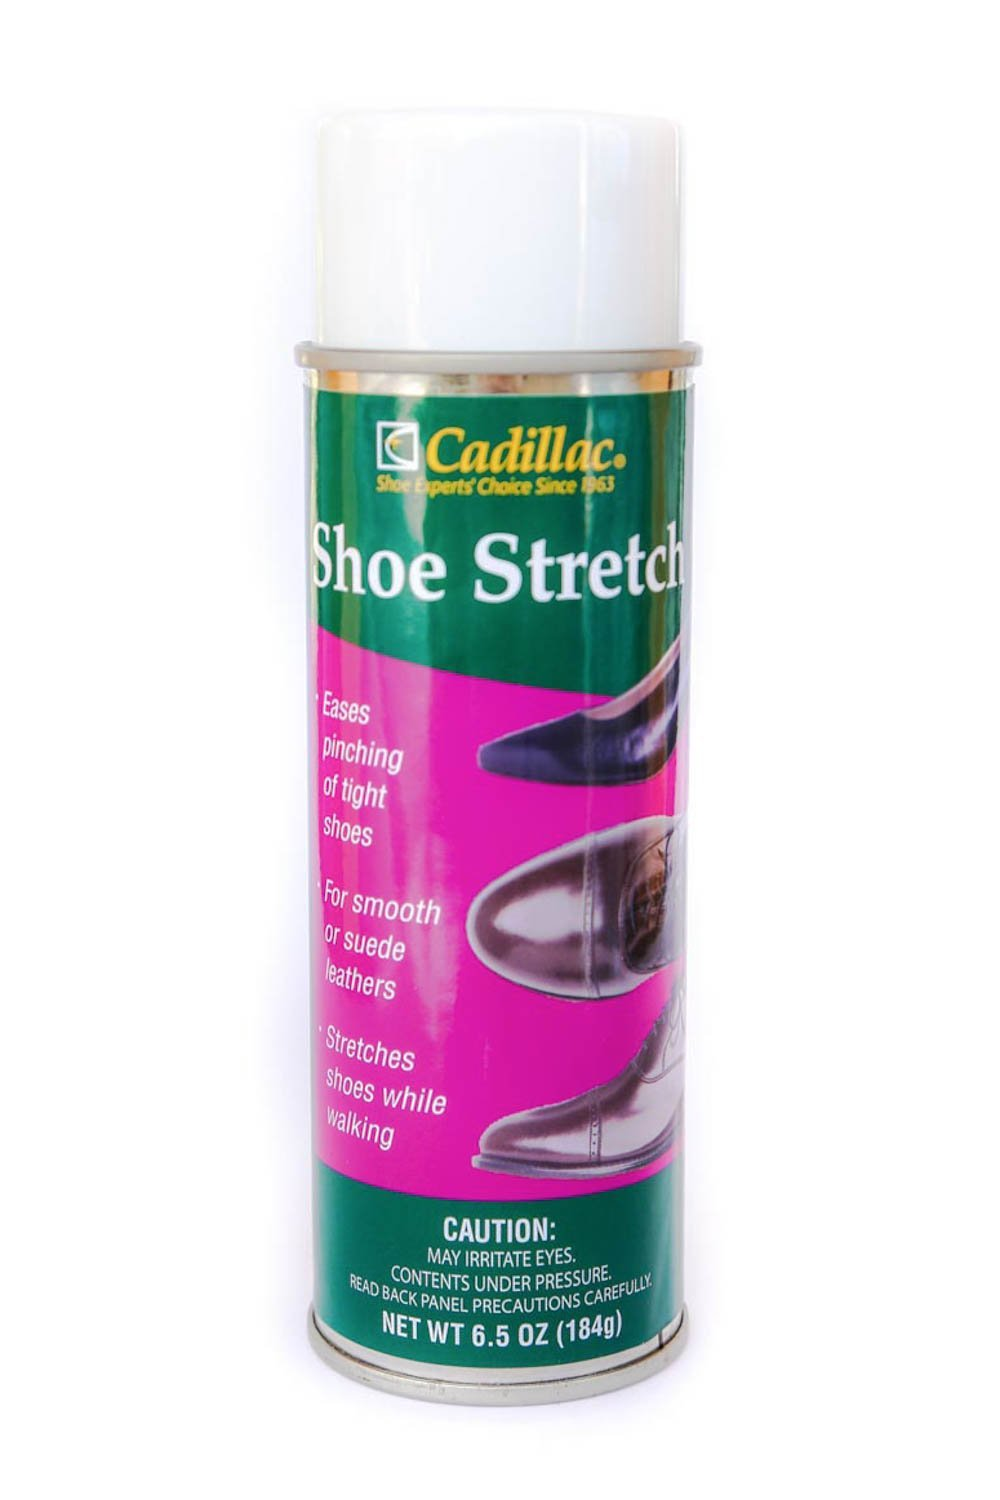 Cadillac Shoe Stretch Spray Tight Shoes Instant Relief Spray 6.5 oz Can